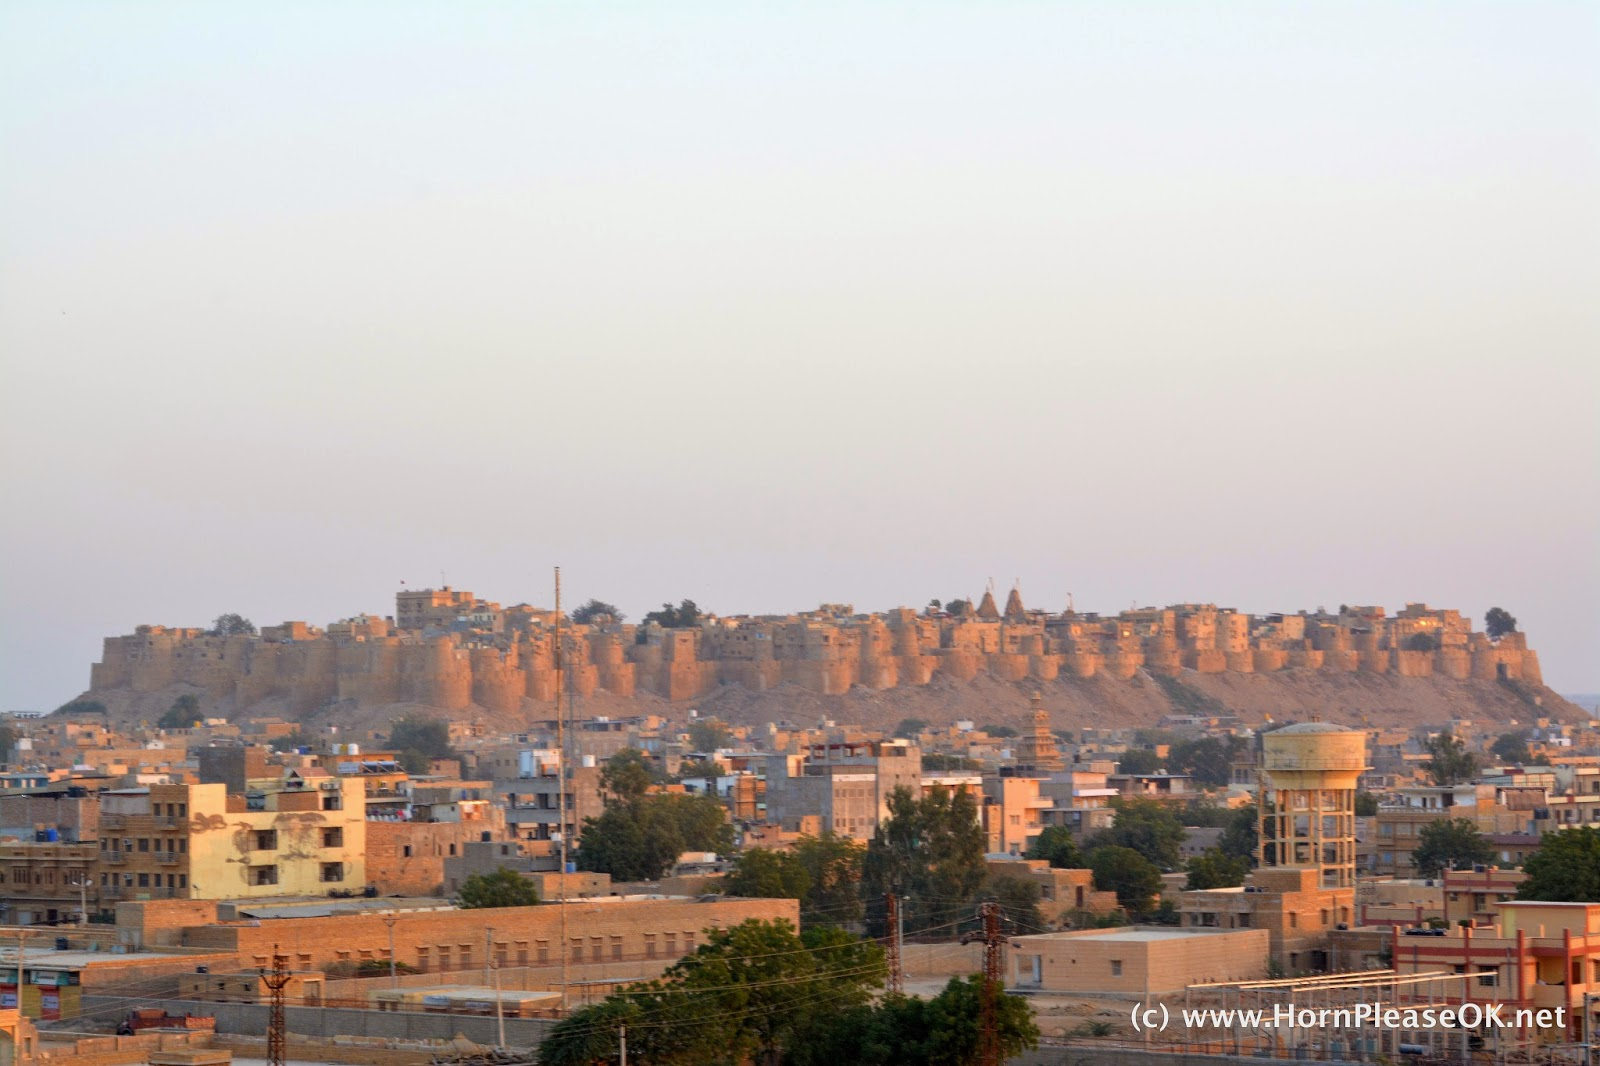 Jaisalmer Fort shines golden under the setting sun